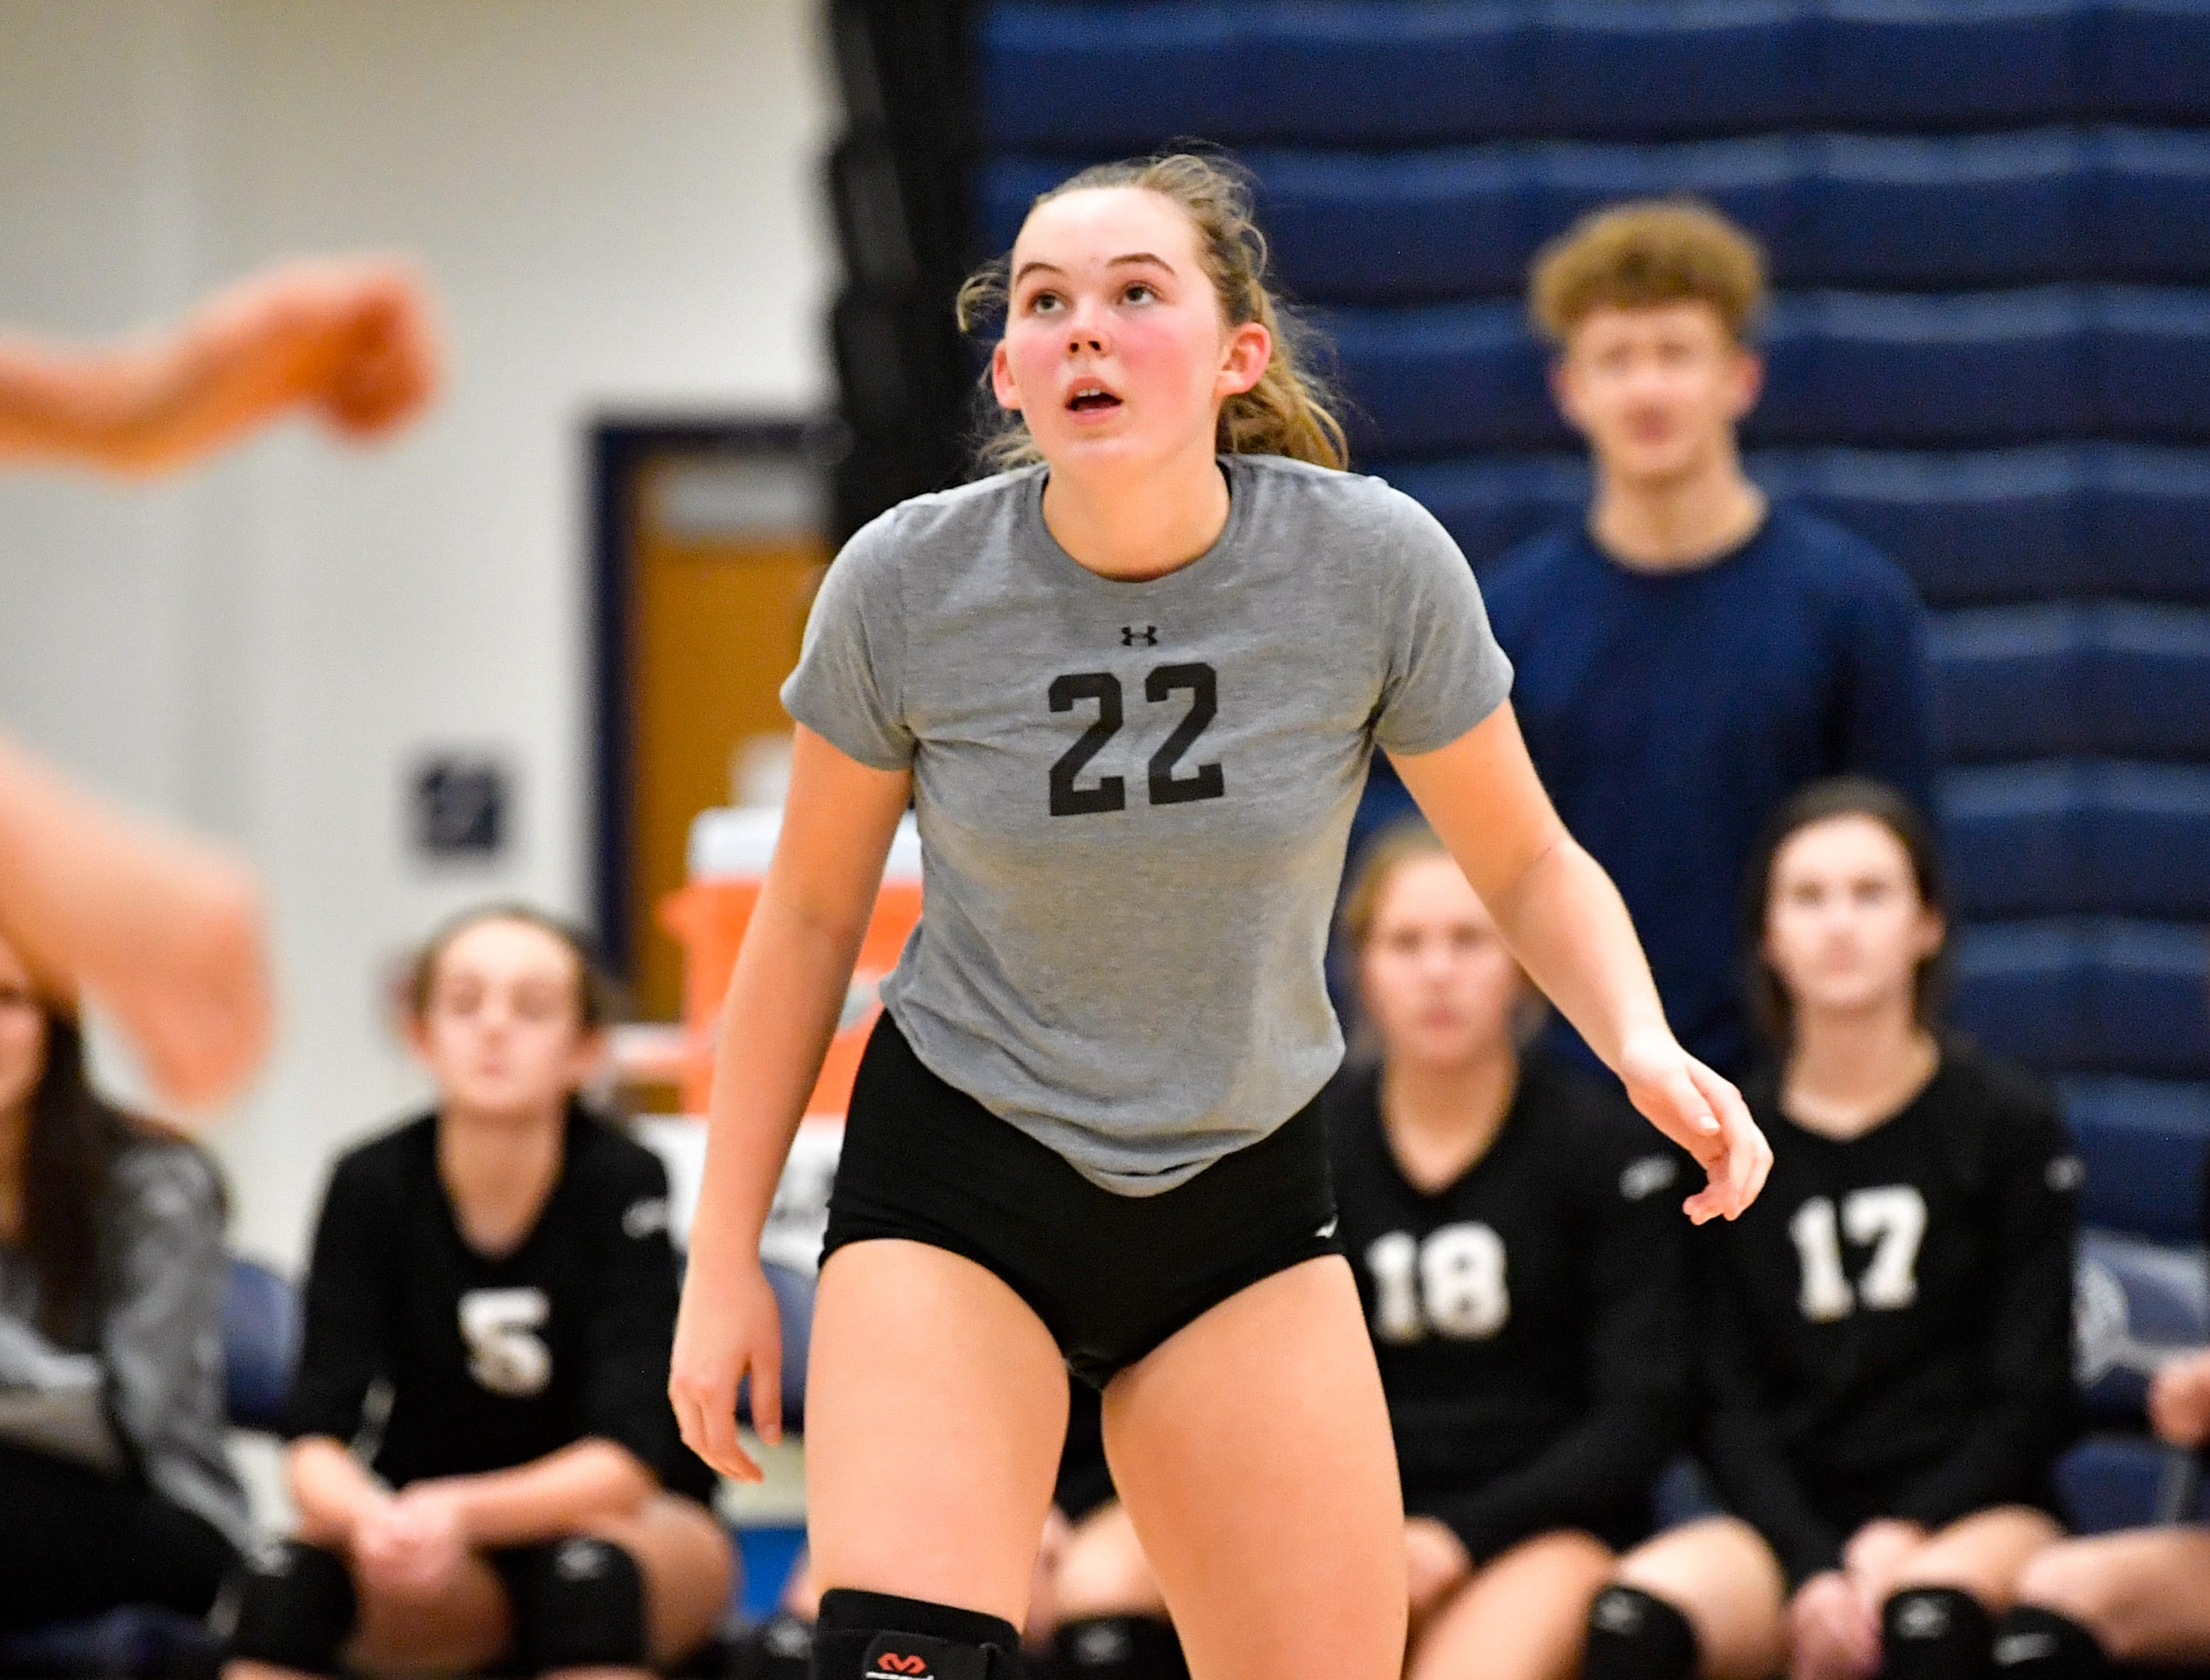 Caitlin Springer (22) of York Suburban watches as the ball sails high into the air during the District 3 Class 3A girls' volleyball quarterfinals between Dover and York Suburban at West York High School, October 30, 2018. The Eagles defeated the Trojans 3-2.